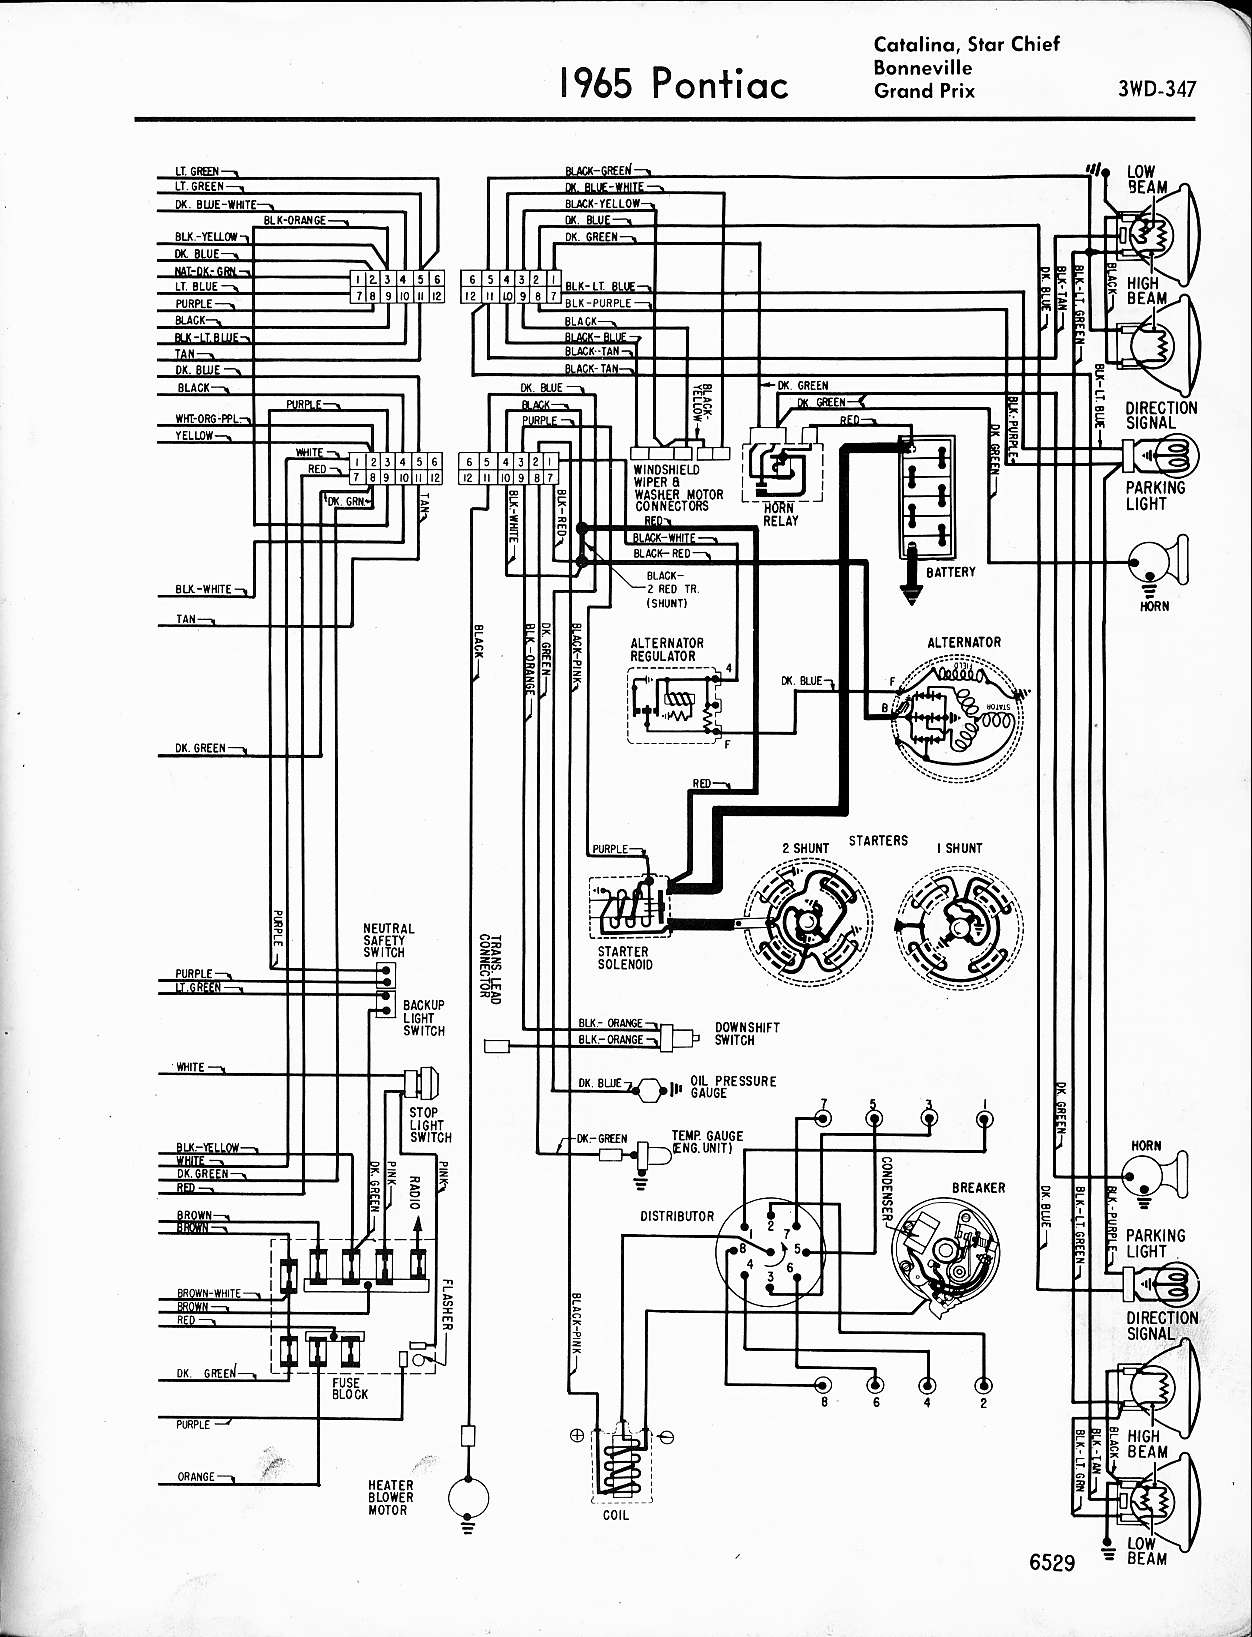 64 Chevelle Steering Column Diagram also 66 Mustang Distributor Wiring also Windshield Washer Diagram Wiring together with 1965 Pontiac Gto Wiring Diagram furthermore 1968 Barracuda Wiring Diagram. on 67 mustang wiring diagram